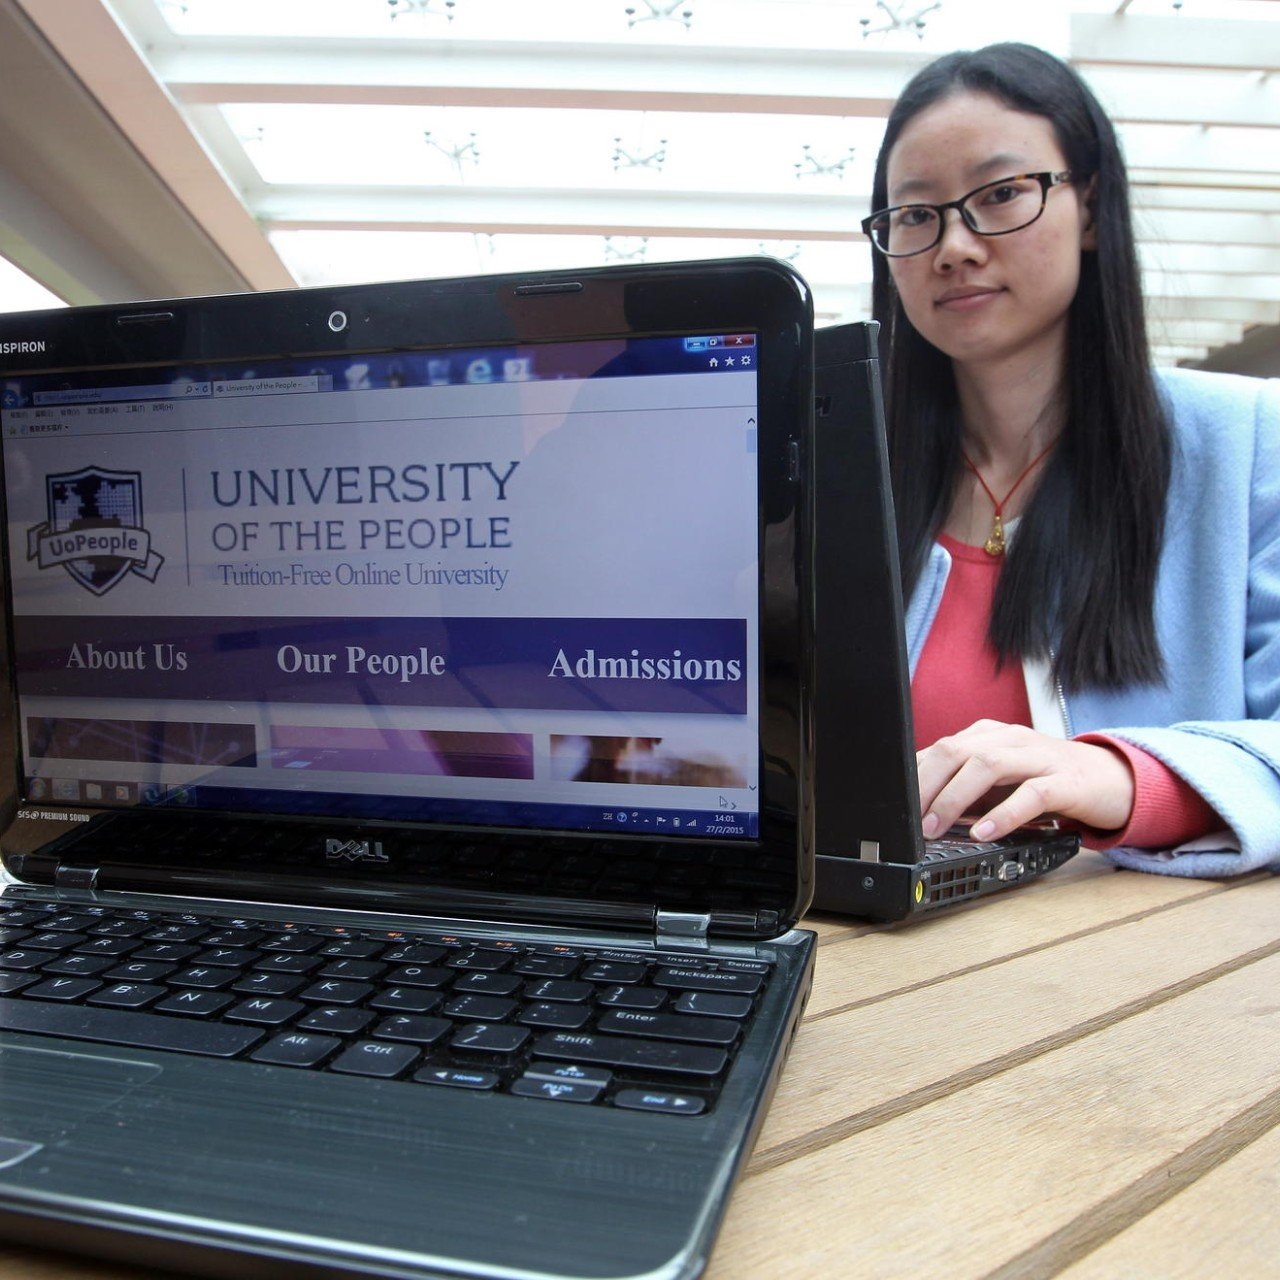 Low-cost online university gives thousands a chance to study | South